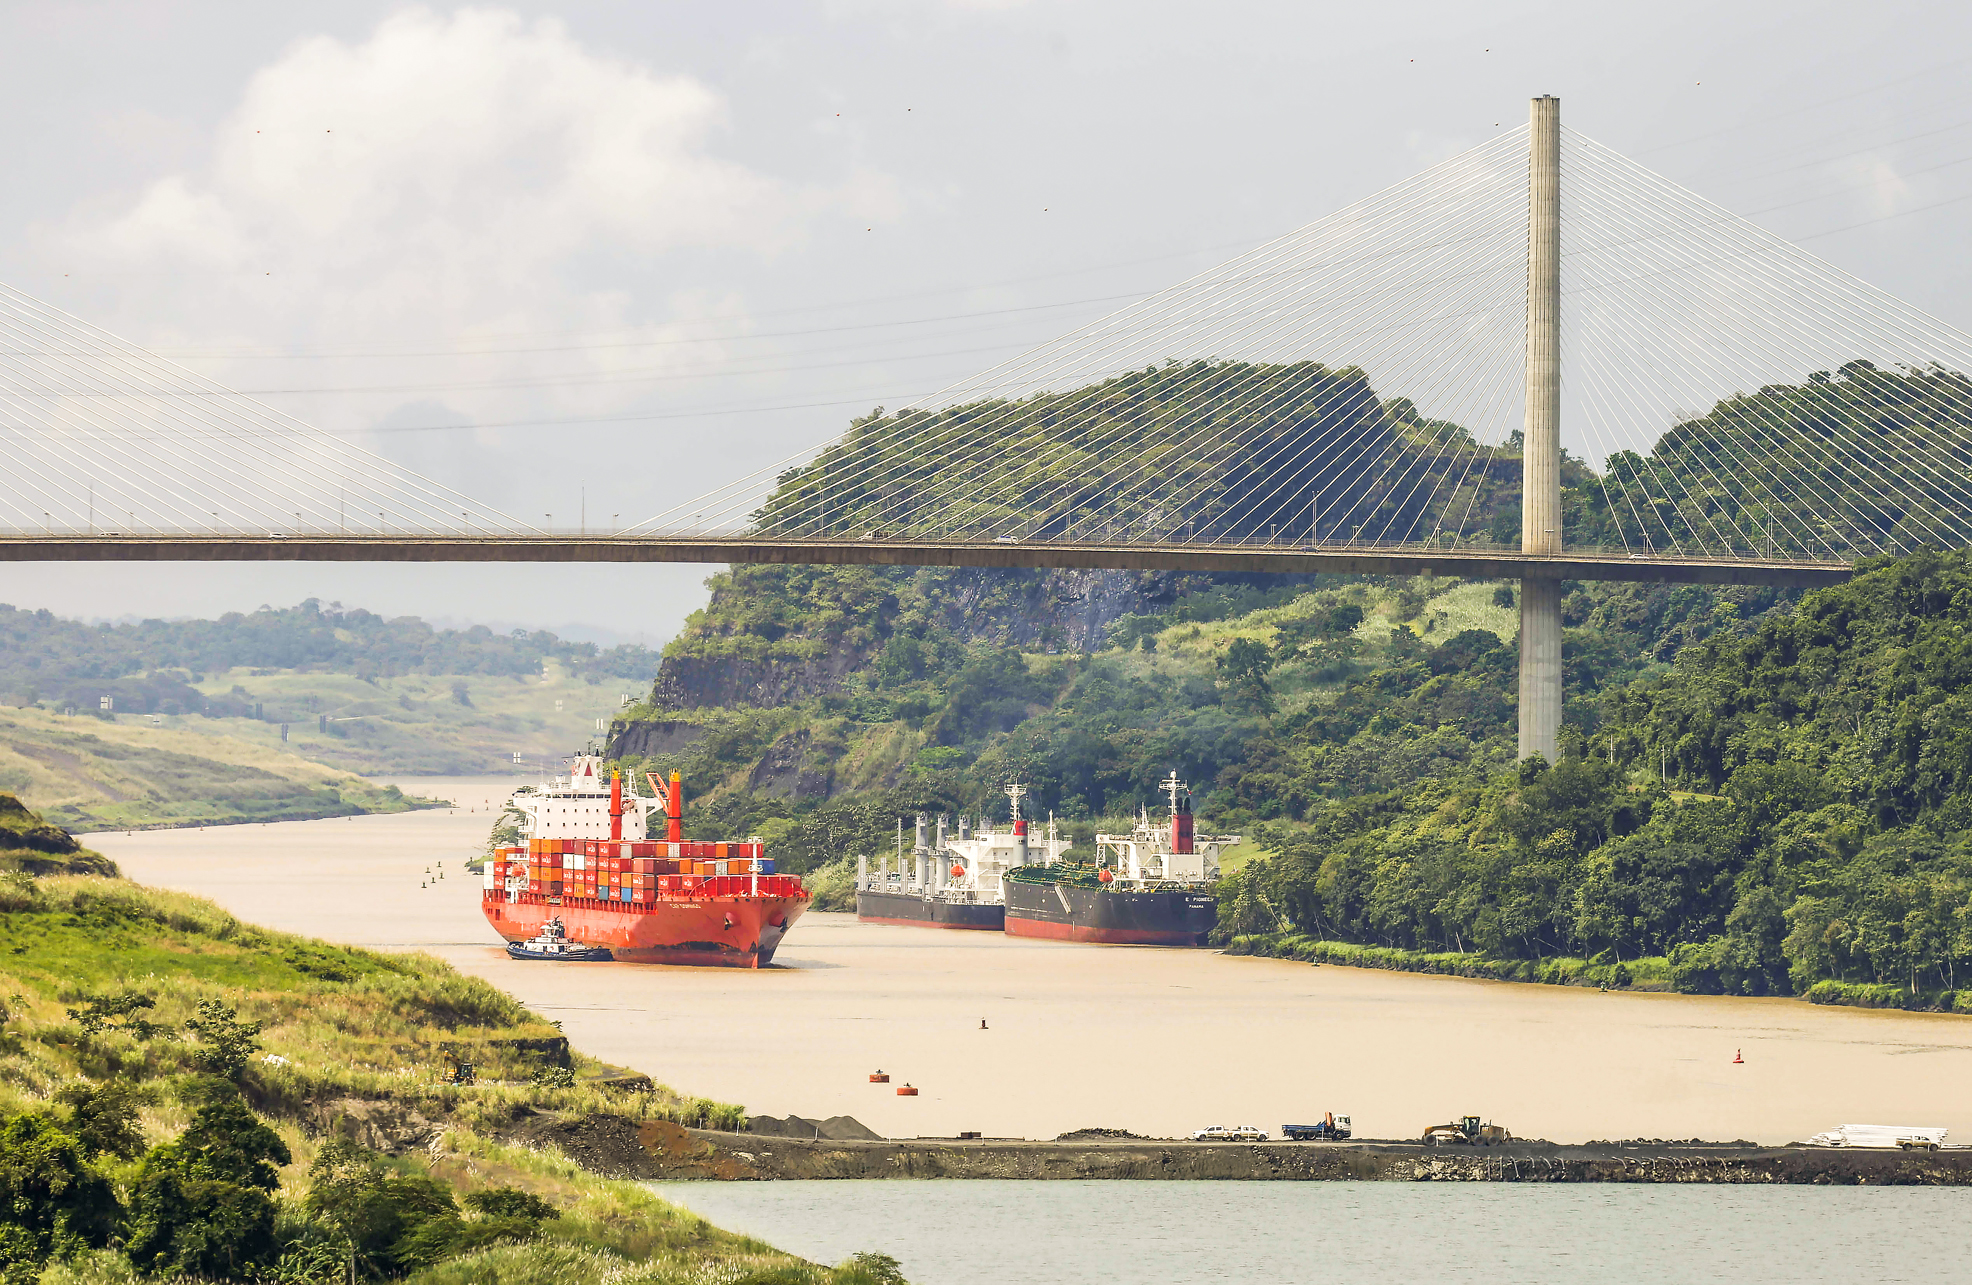 louisiana and panama canal Watch video read more: panama canal authority responds to bloomberg article to read more about the canal's response, click here whoever's at fault, this much is clear: the.